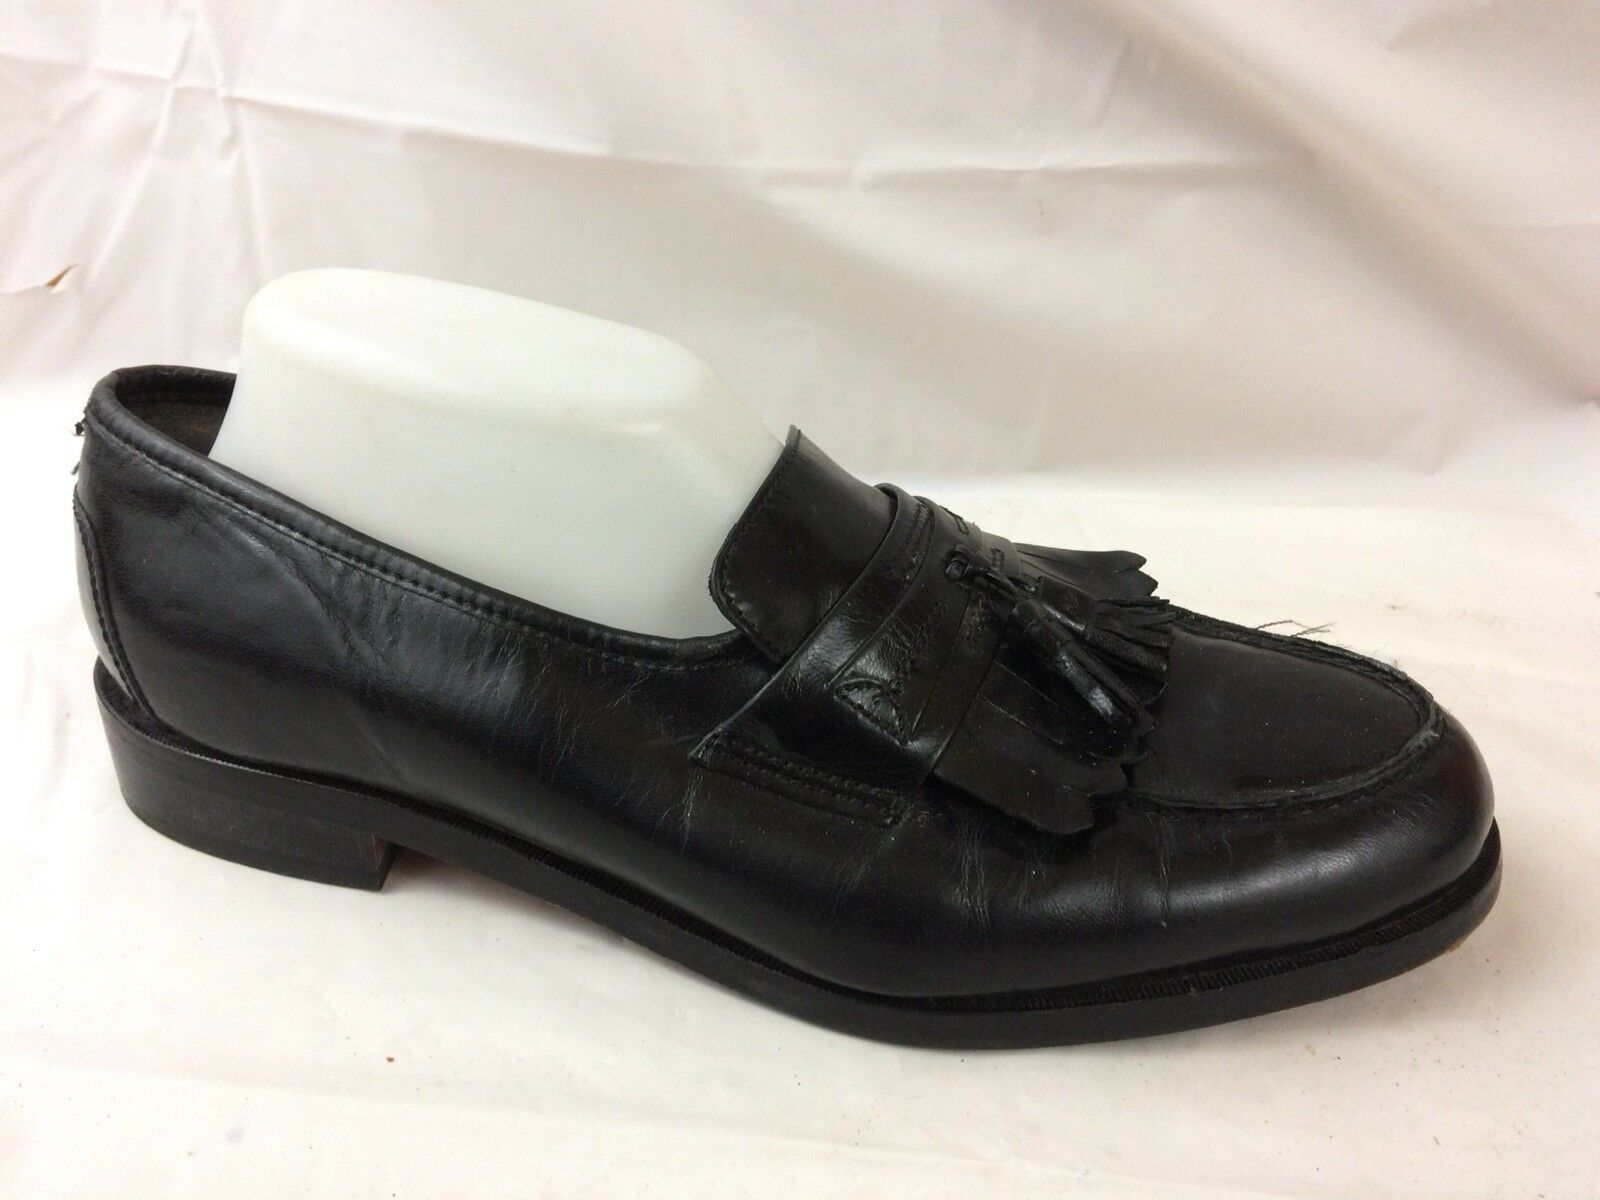 Nunn Bush Manning Loafers Mens 9.5 M Dress Flex Tassel Black Leather 83554 shoes